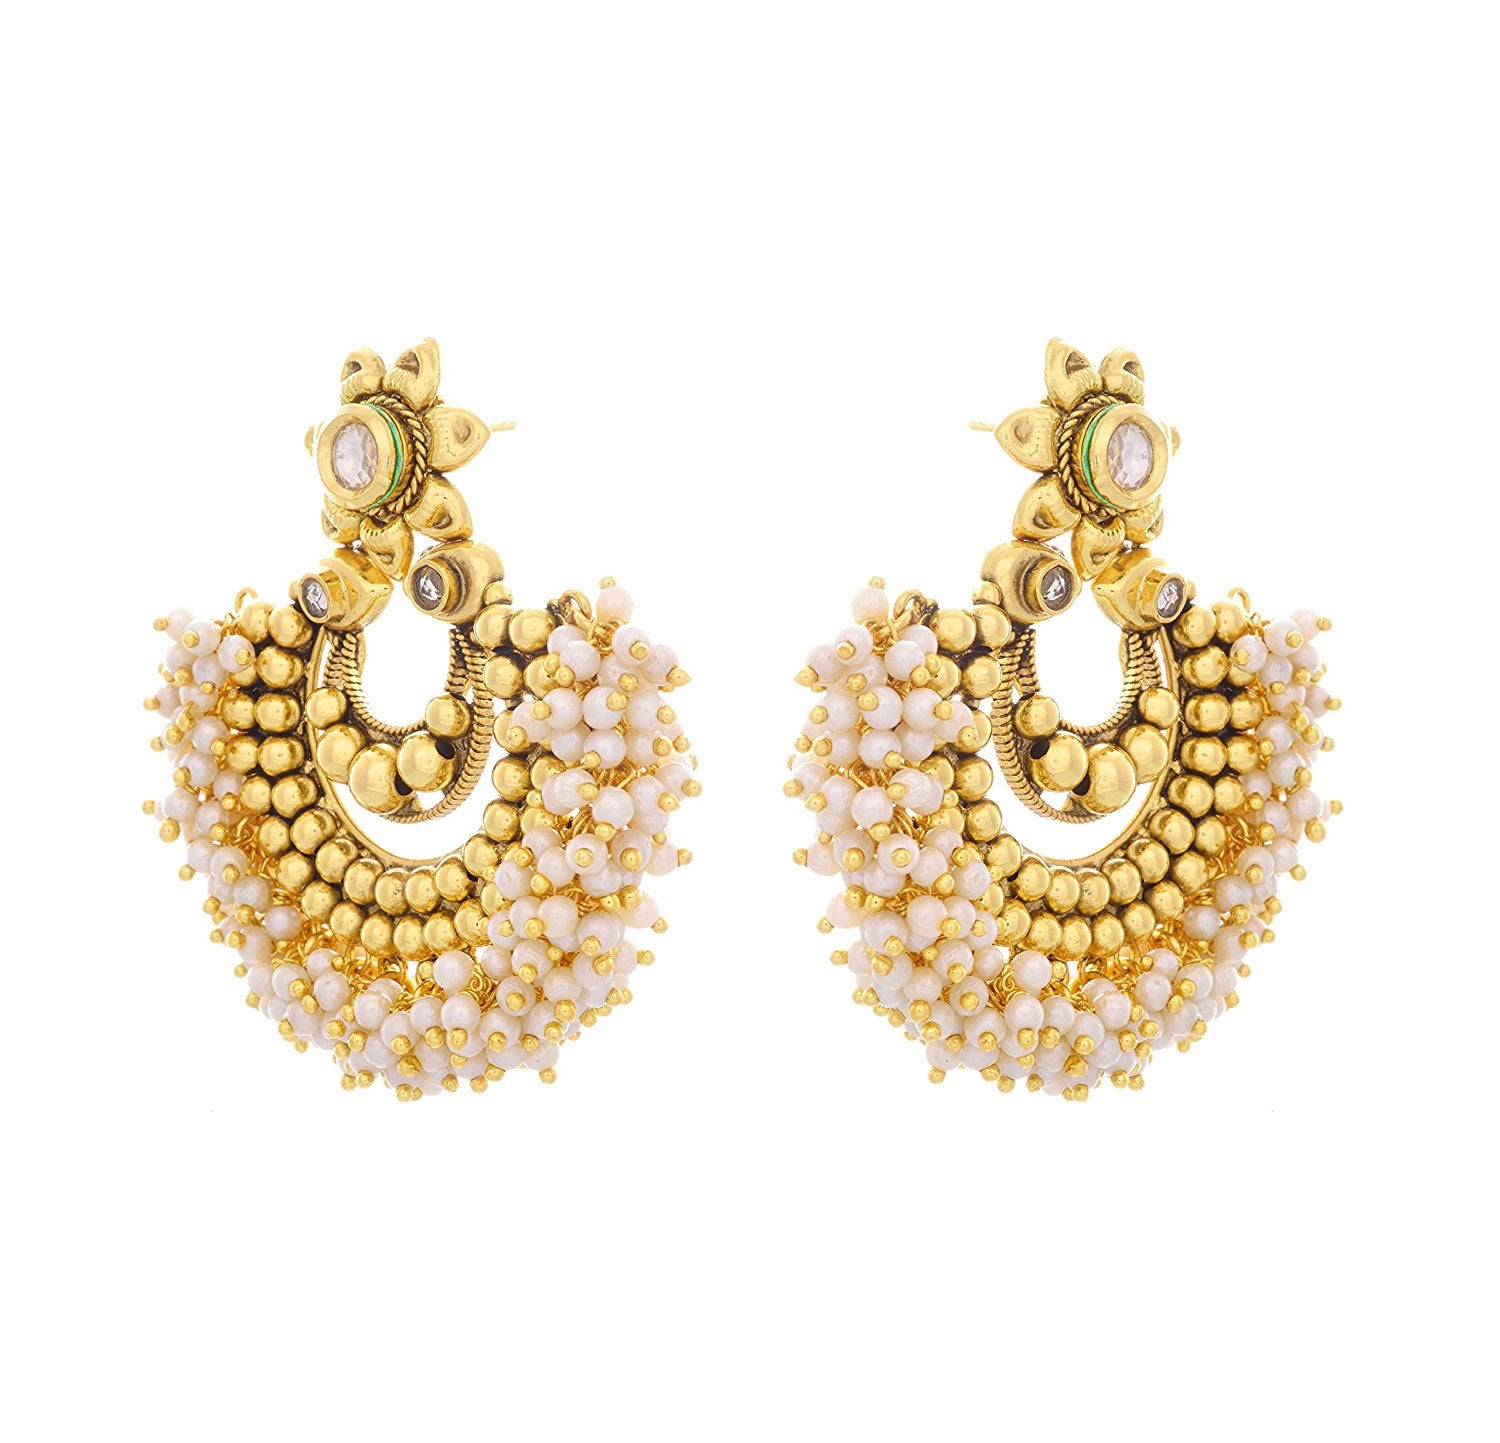 JFL- Traditional Ethnic One Gram Gold Plated Pearls Designer Earrings for Women and Girls.